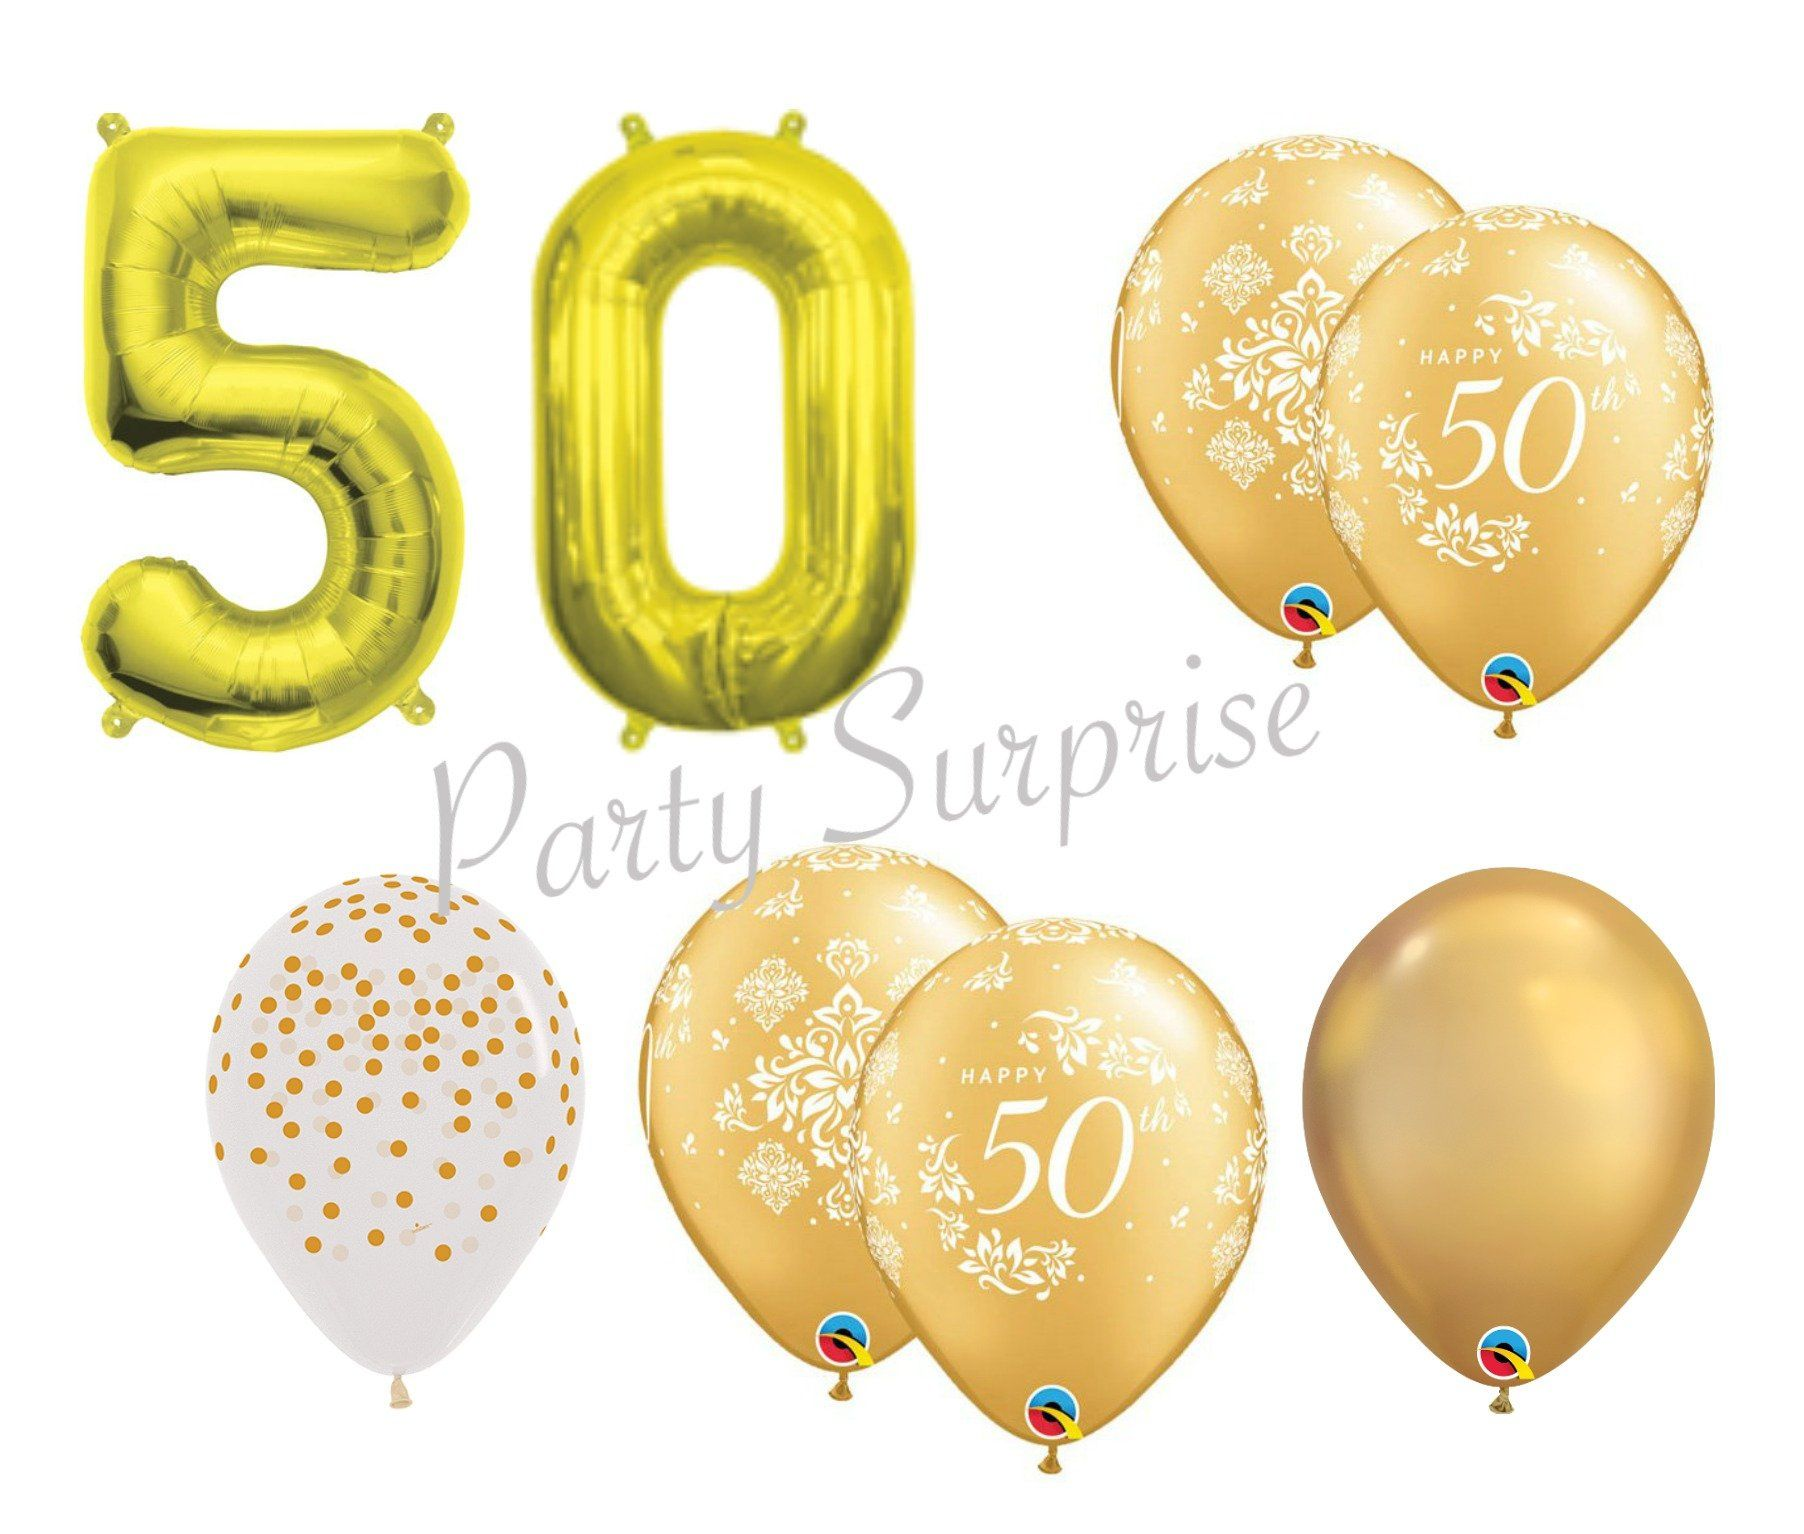 50th Anniversary Balloon Package Gold Balloons Birthday Party Decor